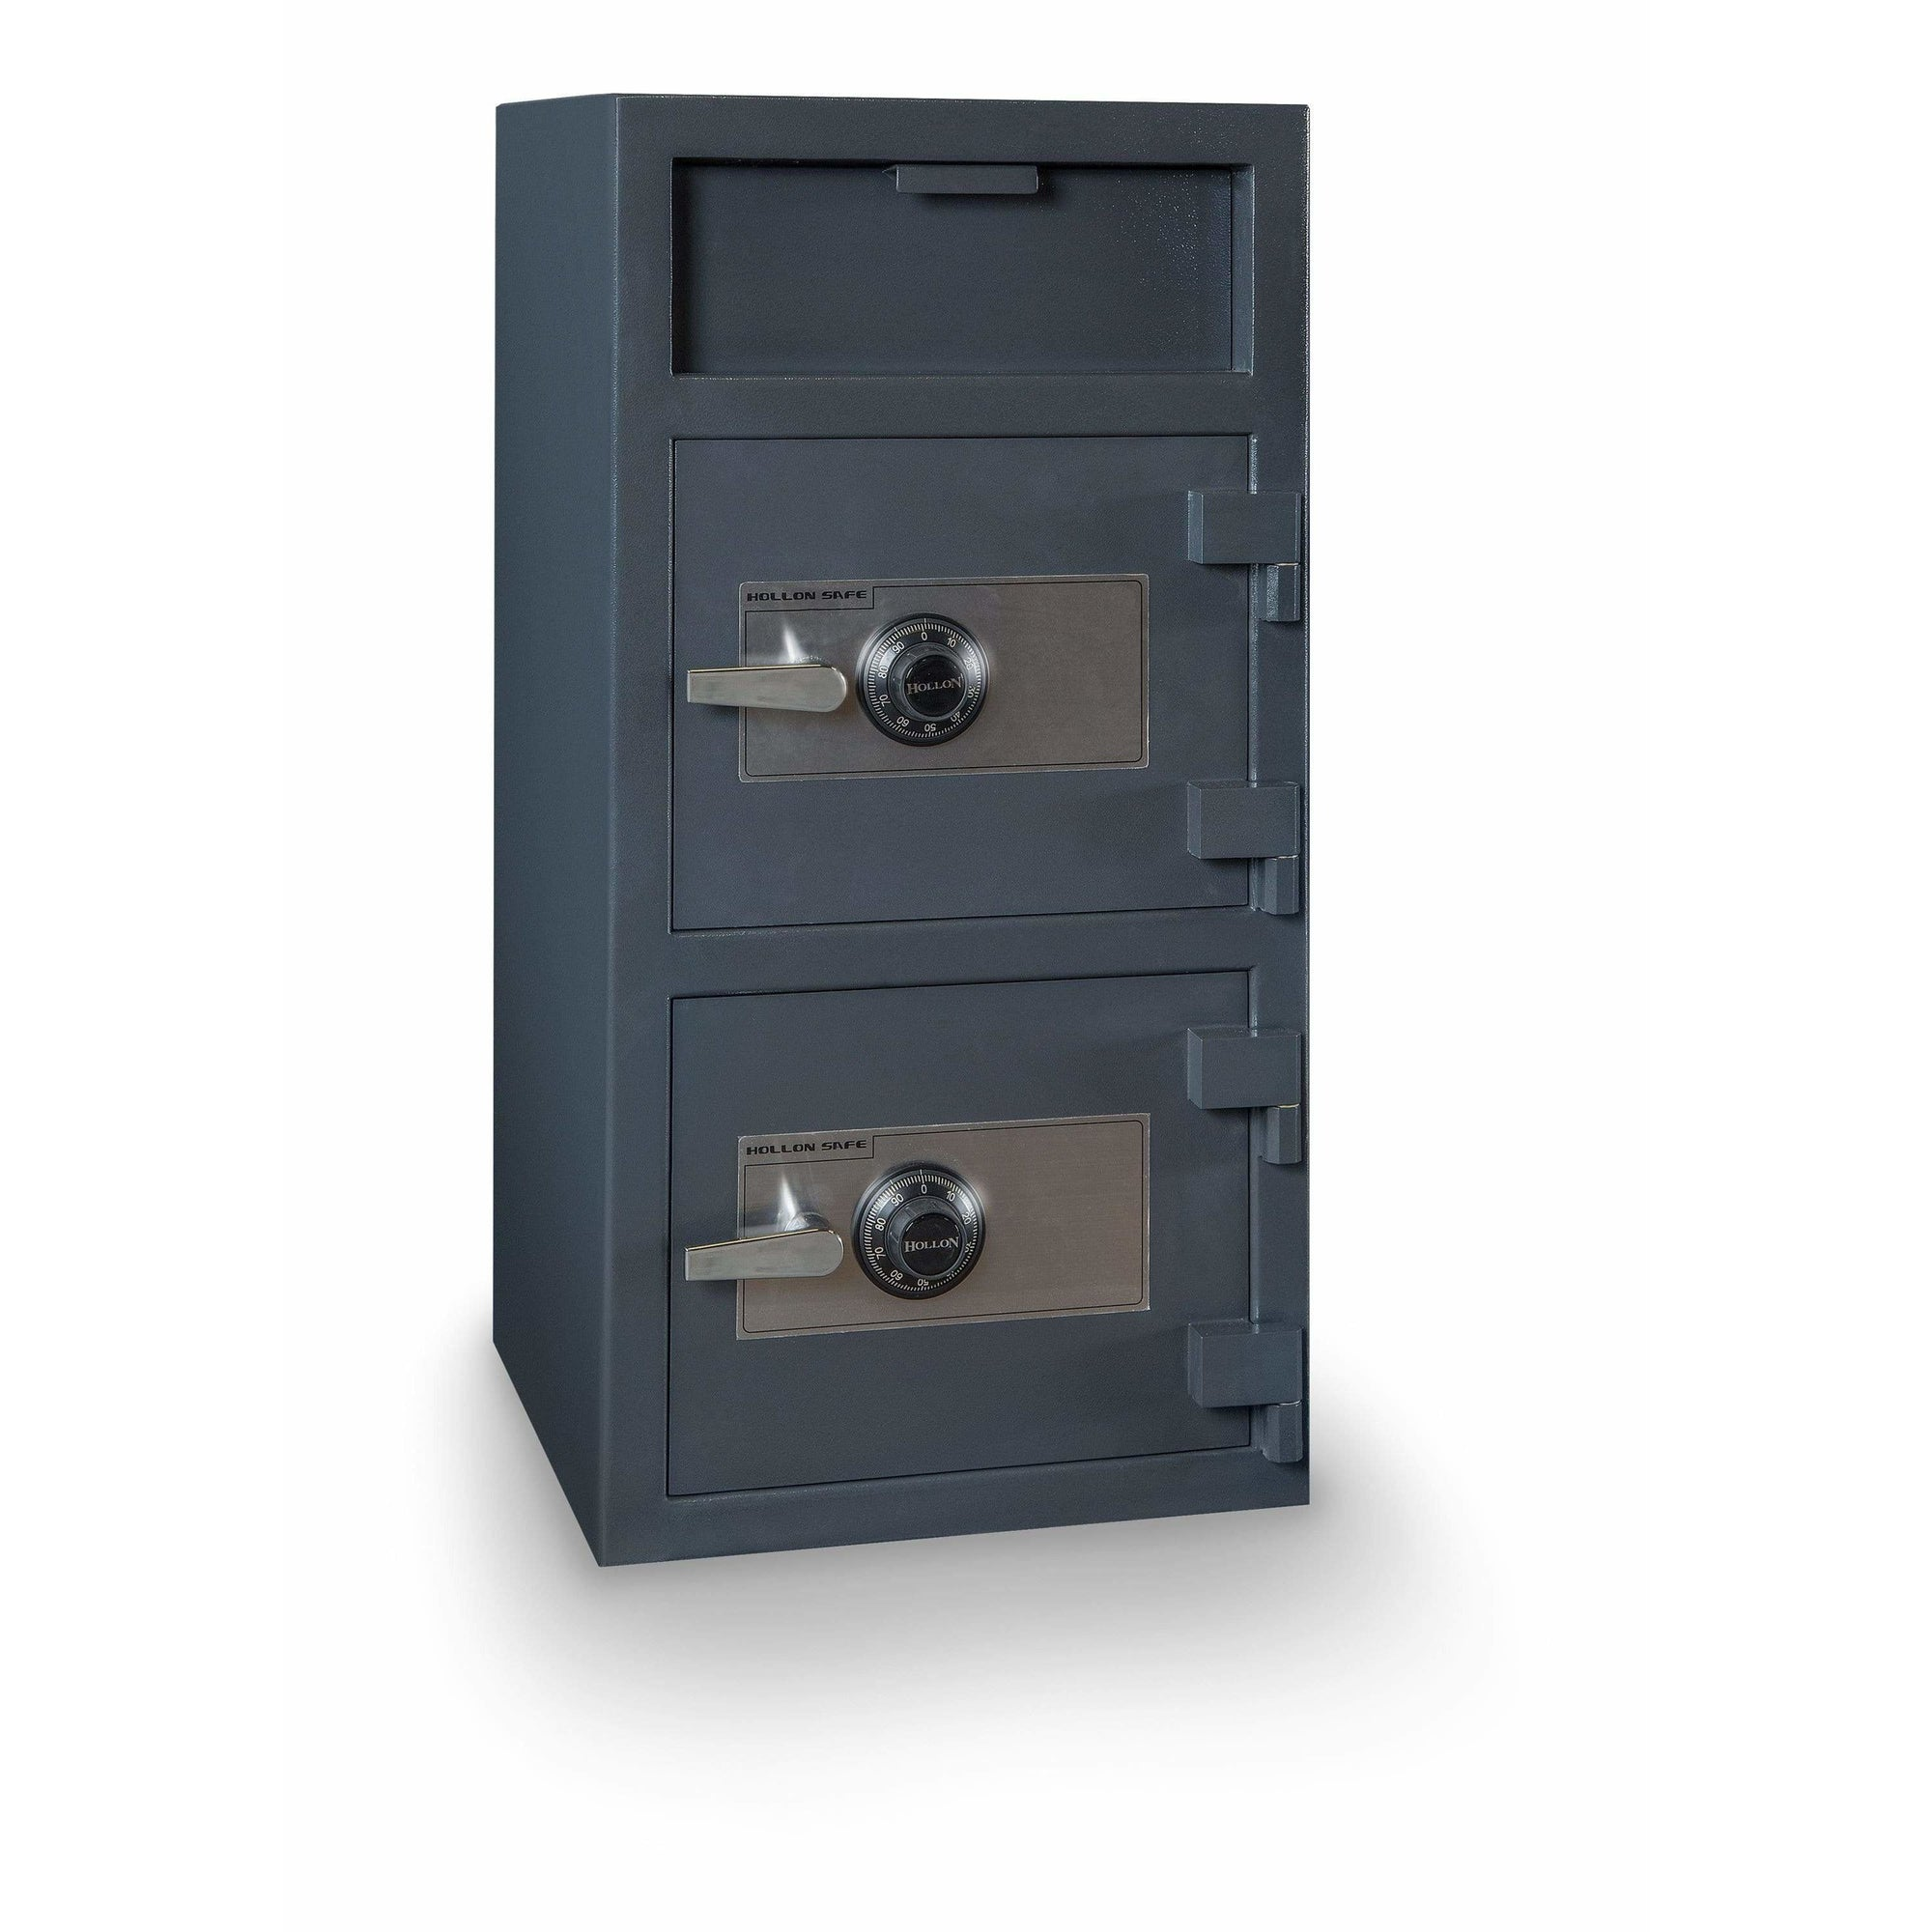 Hollon Safe Deposit Safe Hollon Safe Double Door Depository Safe FDD-4020CC FDD-4020CC